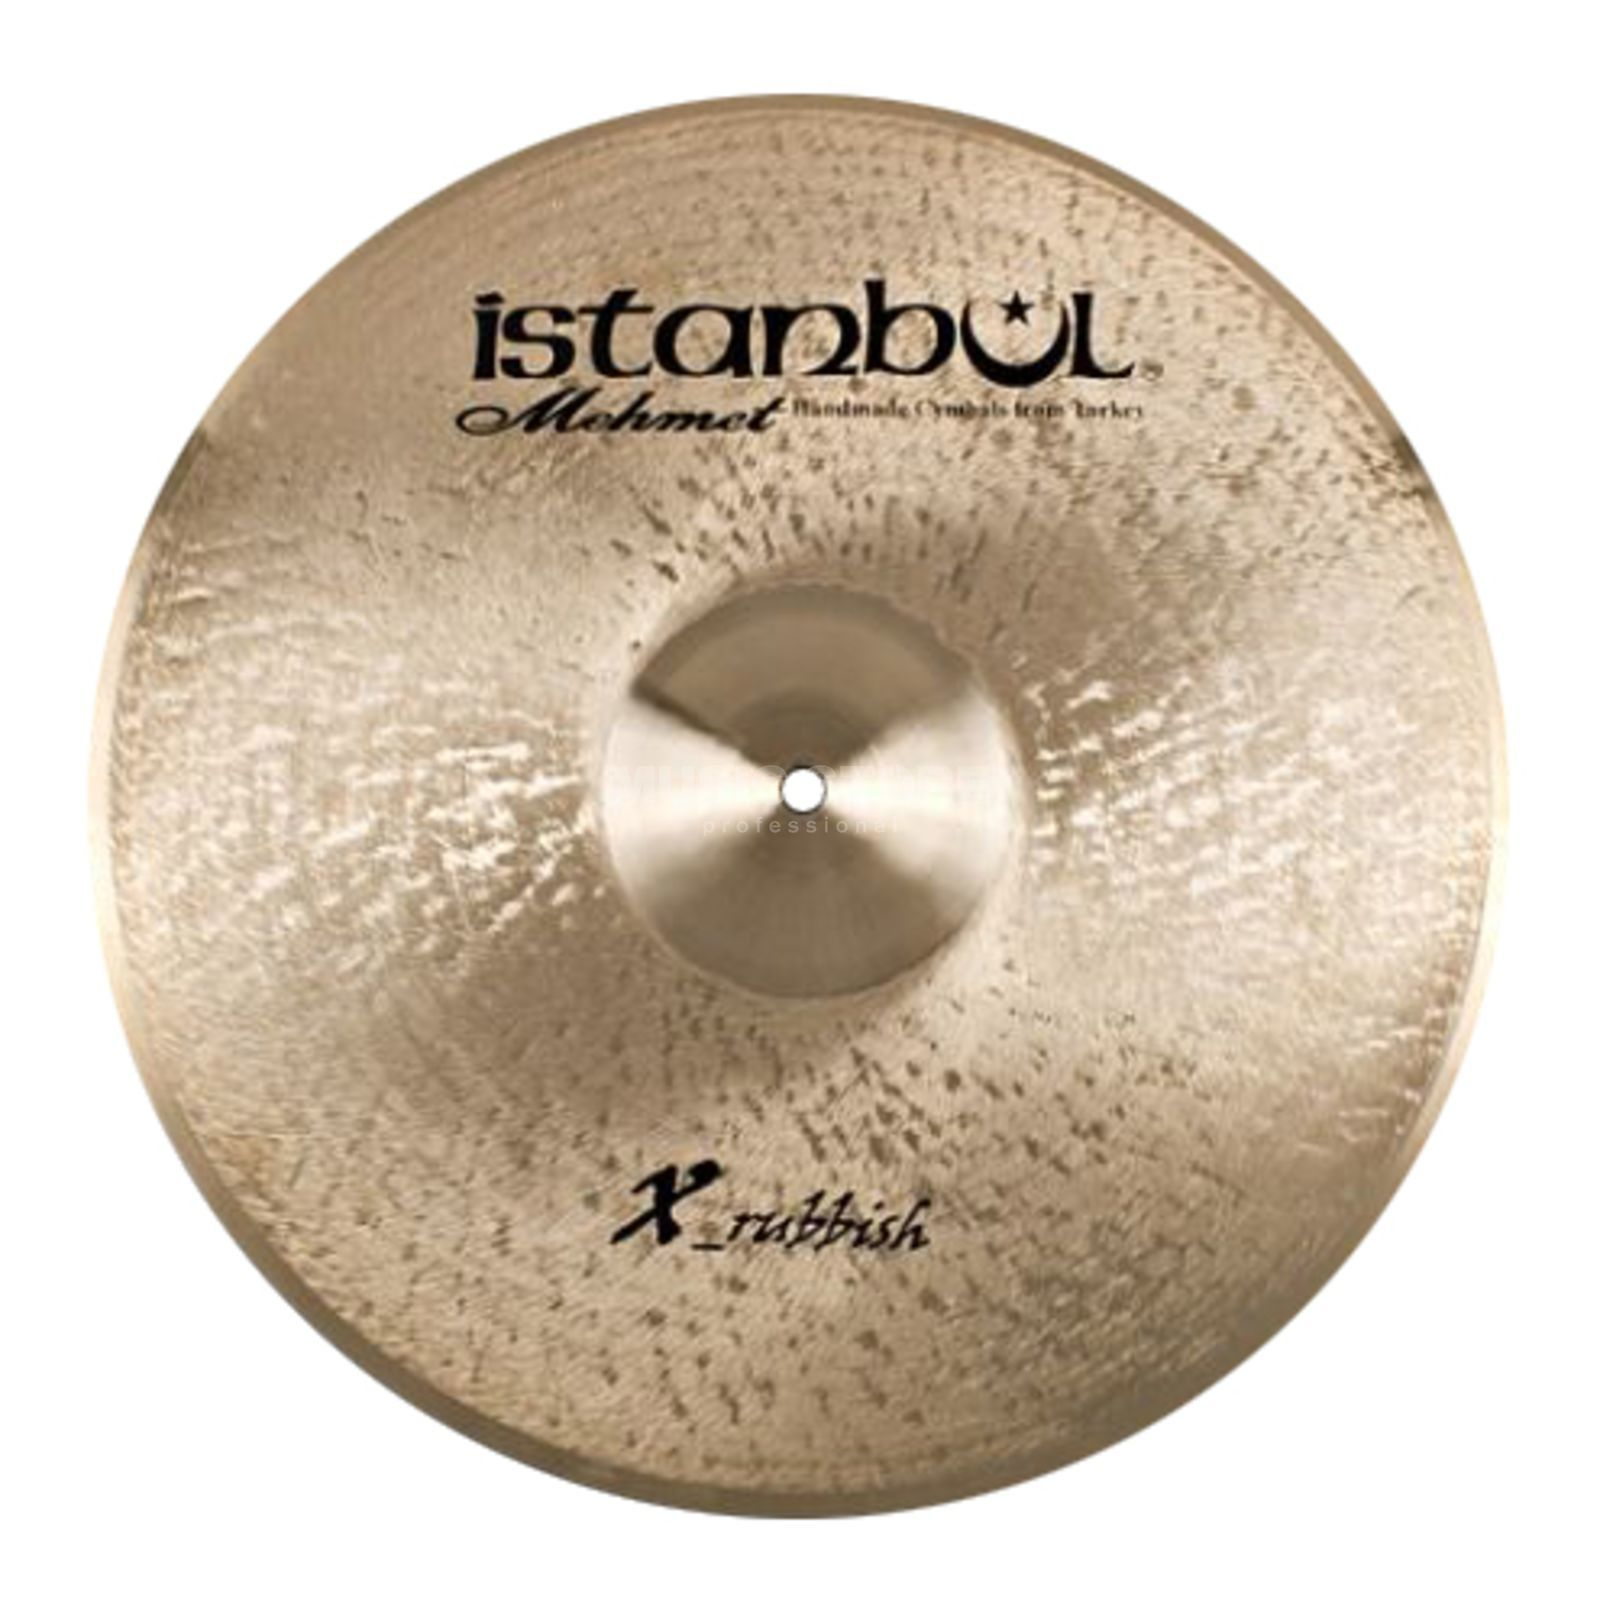 "Istanbul X-Rubbish Crash 18"", XR-C19 Product Image"